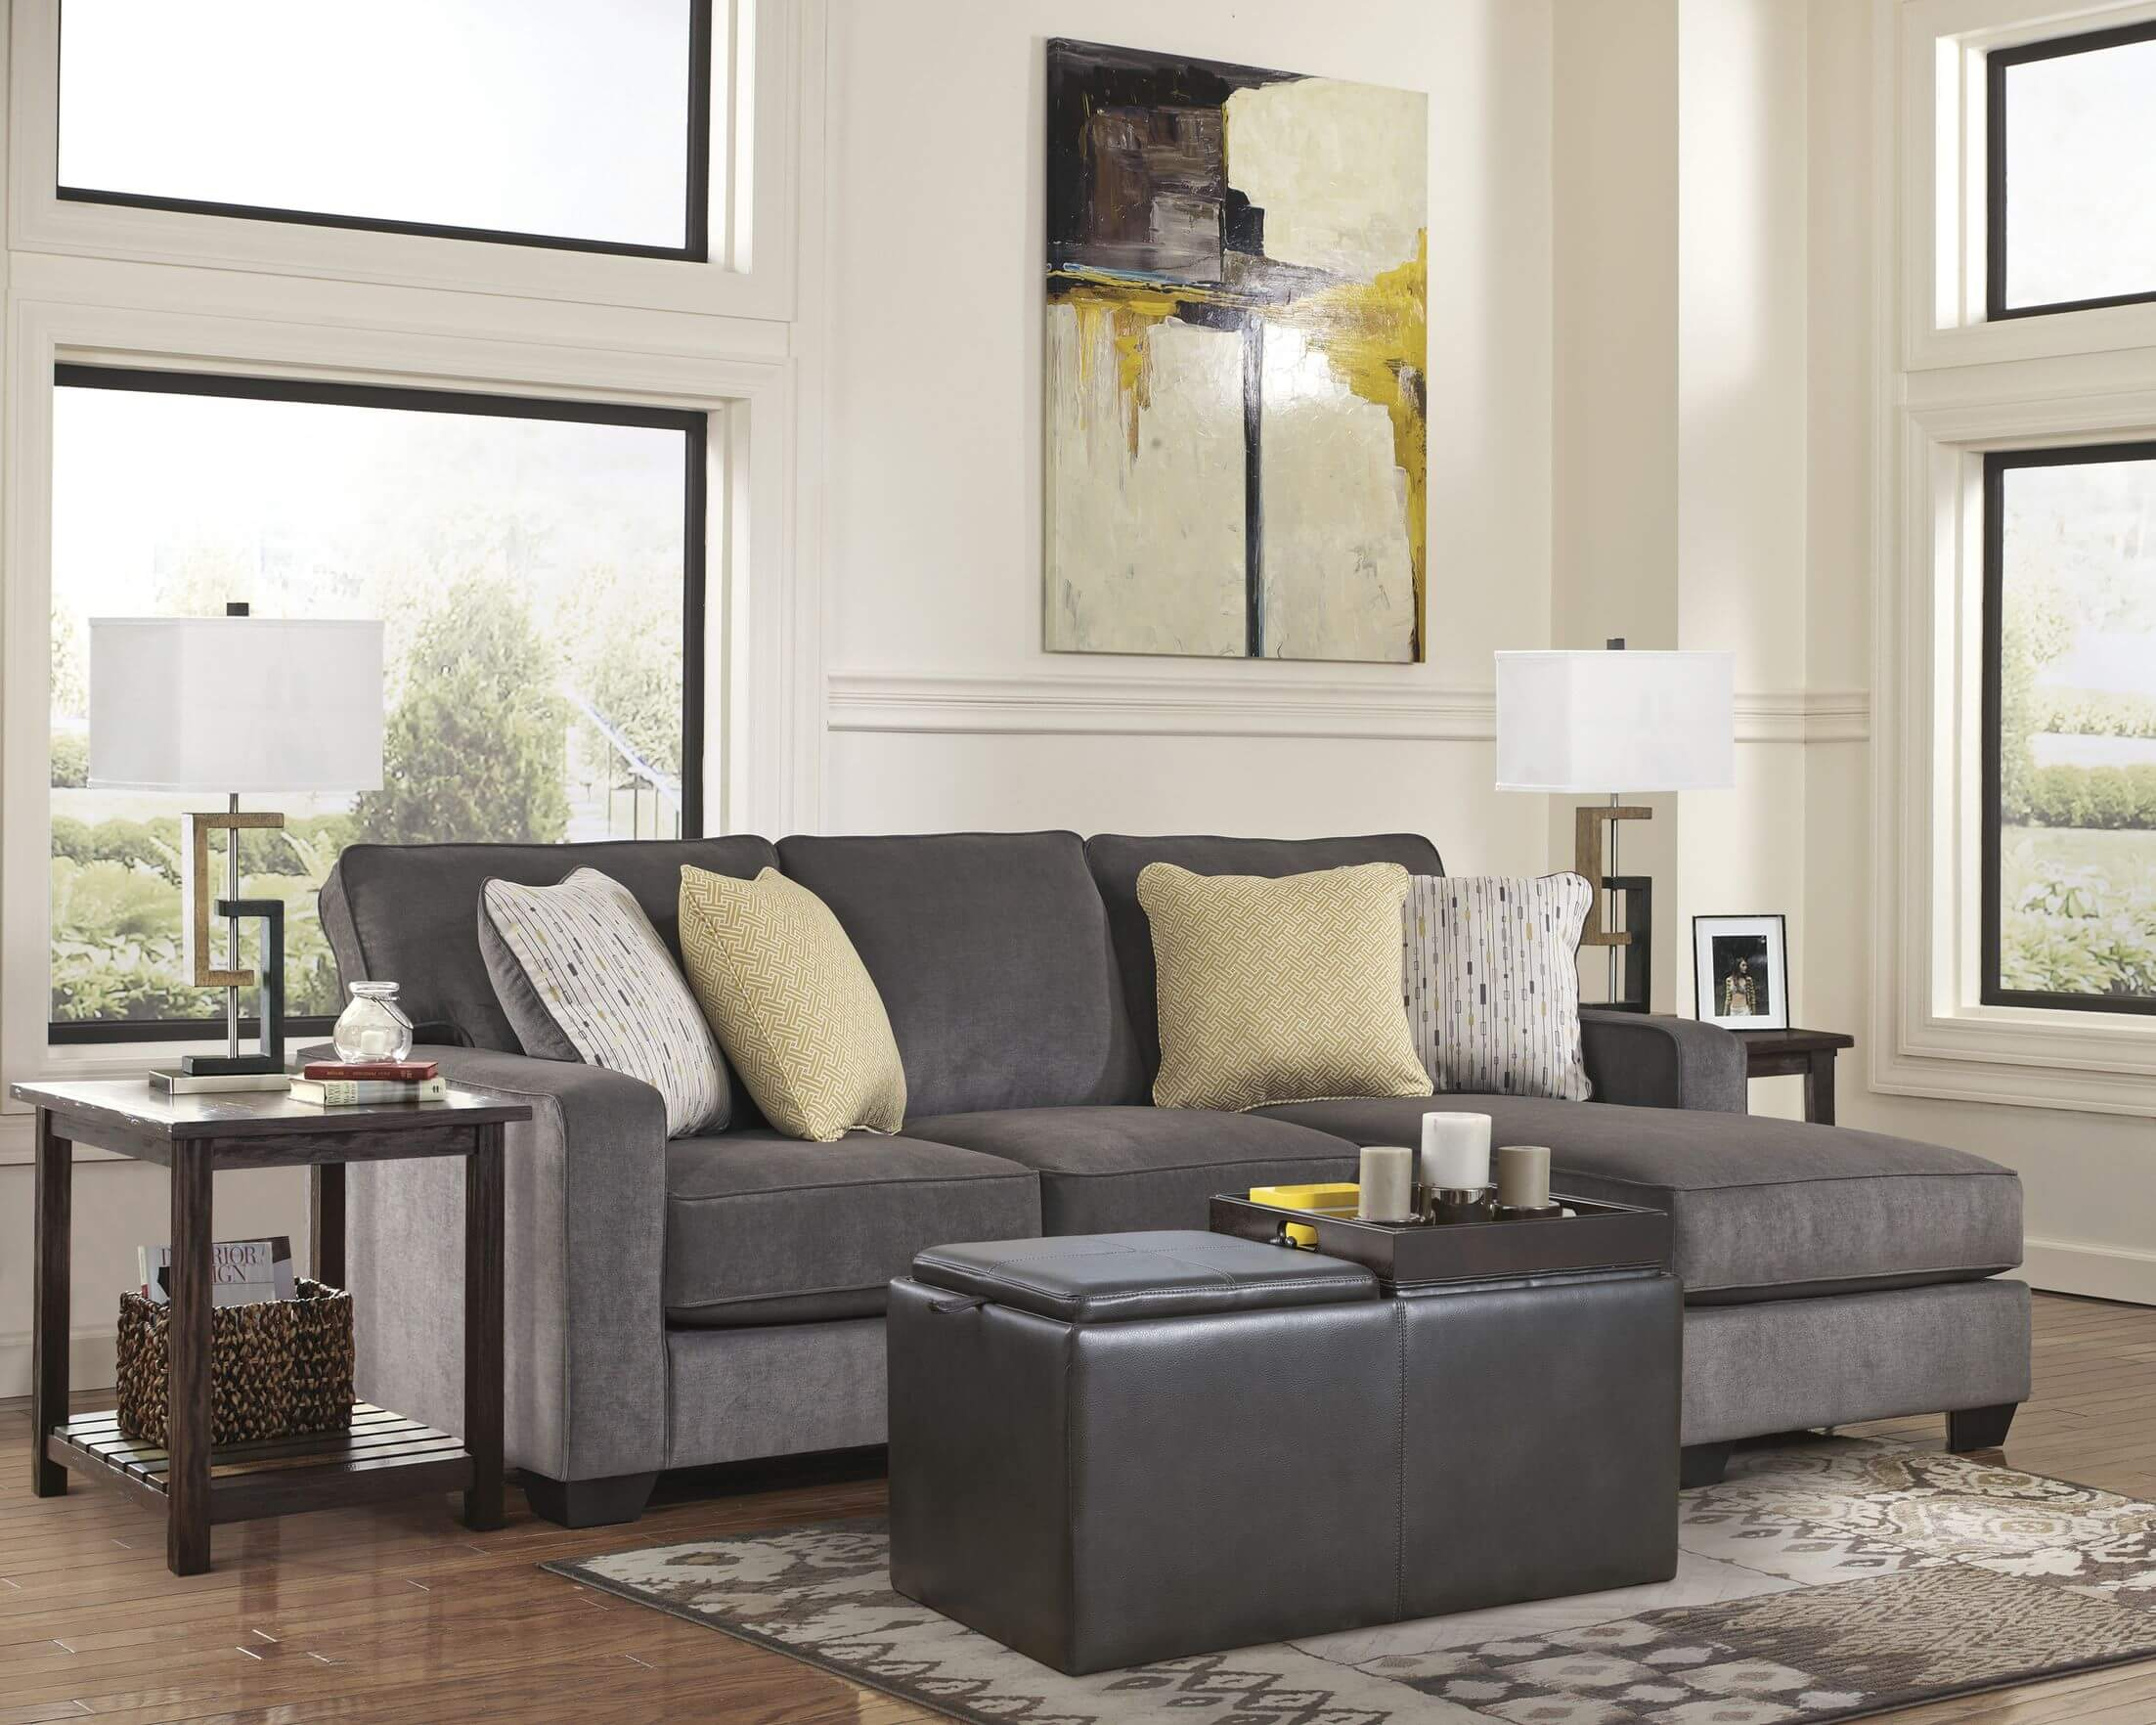 This cozy space features a simple and direct cushion backed sectional couch with built-in chaise lounge, with matching grey leather ottoman over natural hardwood flooring.